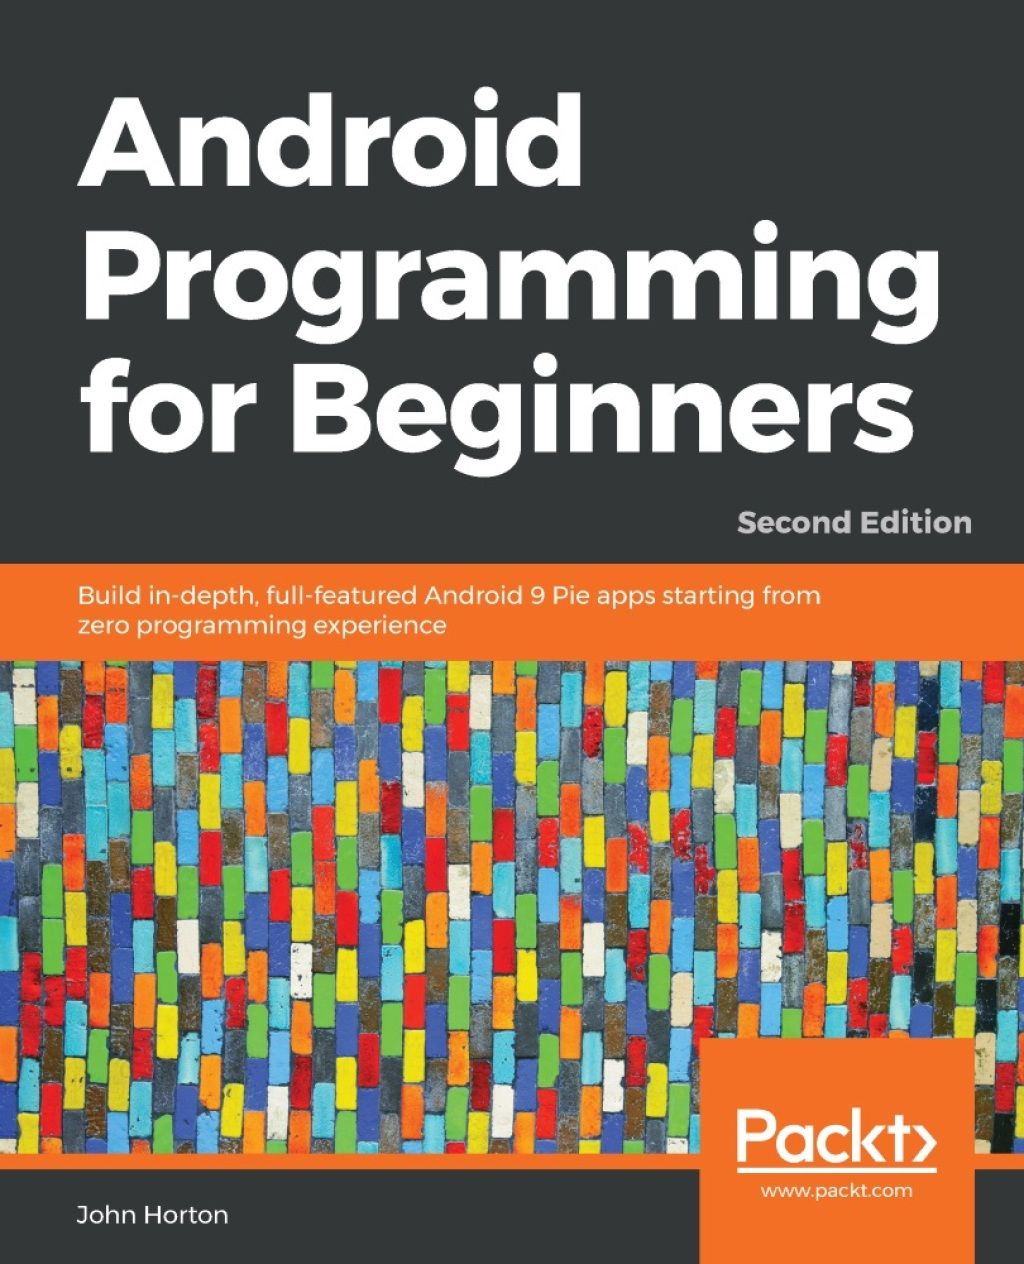 Android Programming For Beginners Ebook In 2019 Computer Books